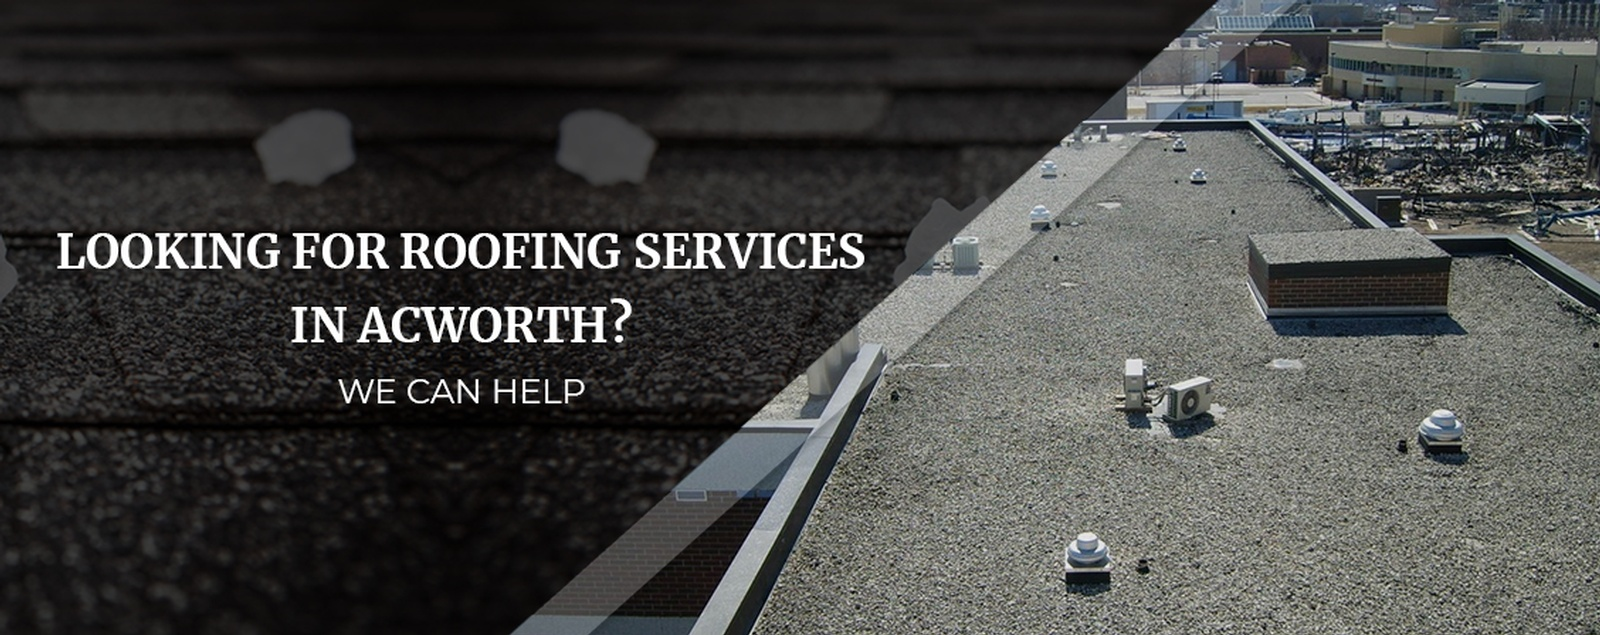 Looking For Roofing Services In Acworth We Can Help